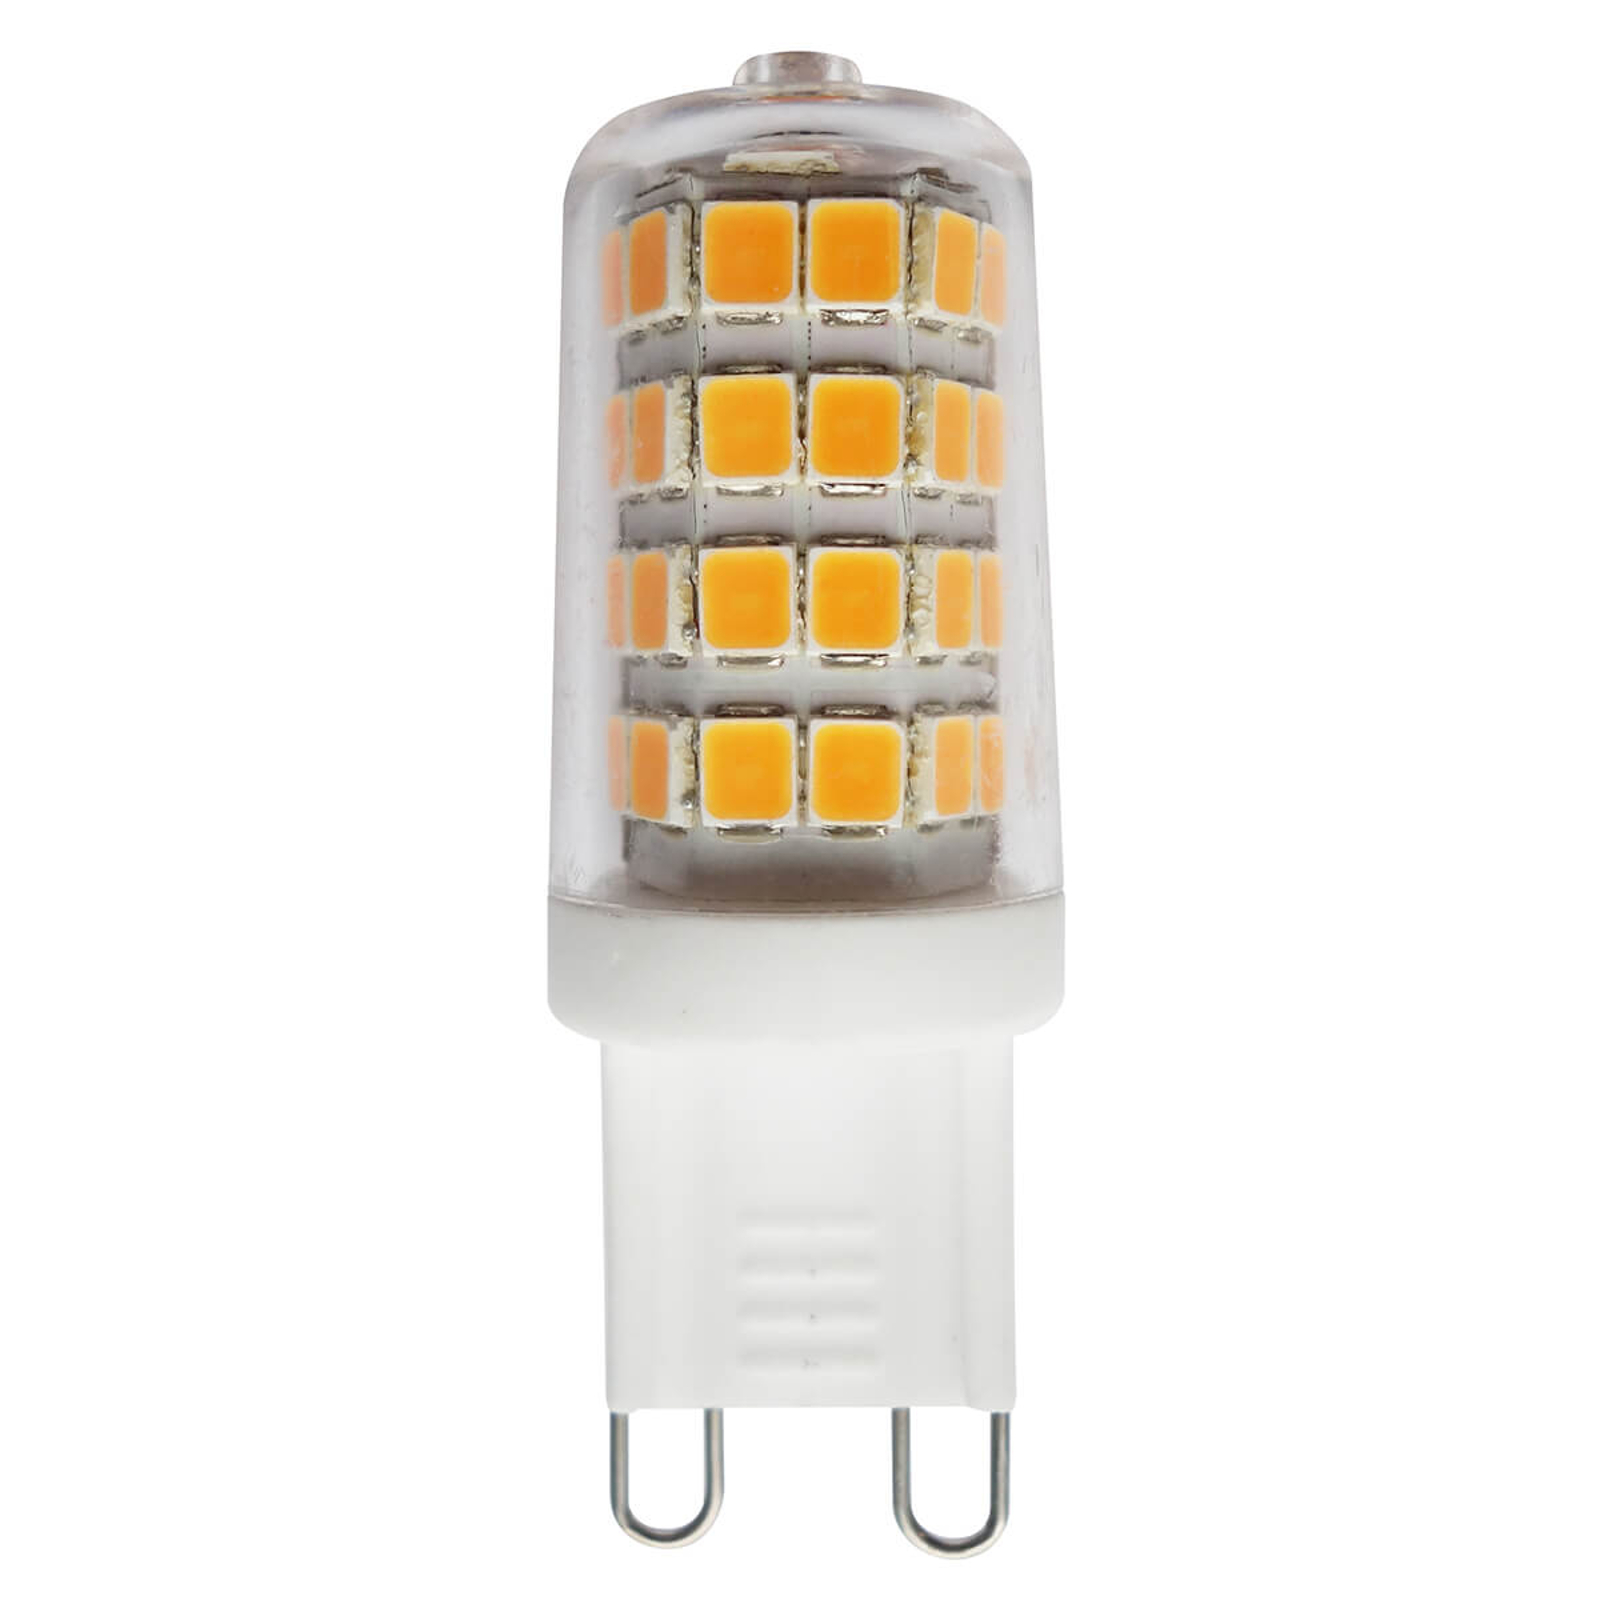 Ampoule à broche LED G9 3W 827, transparente